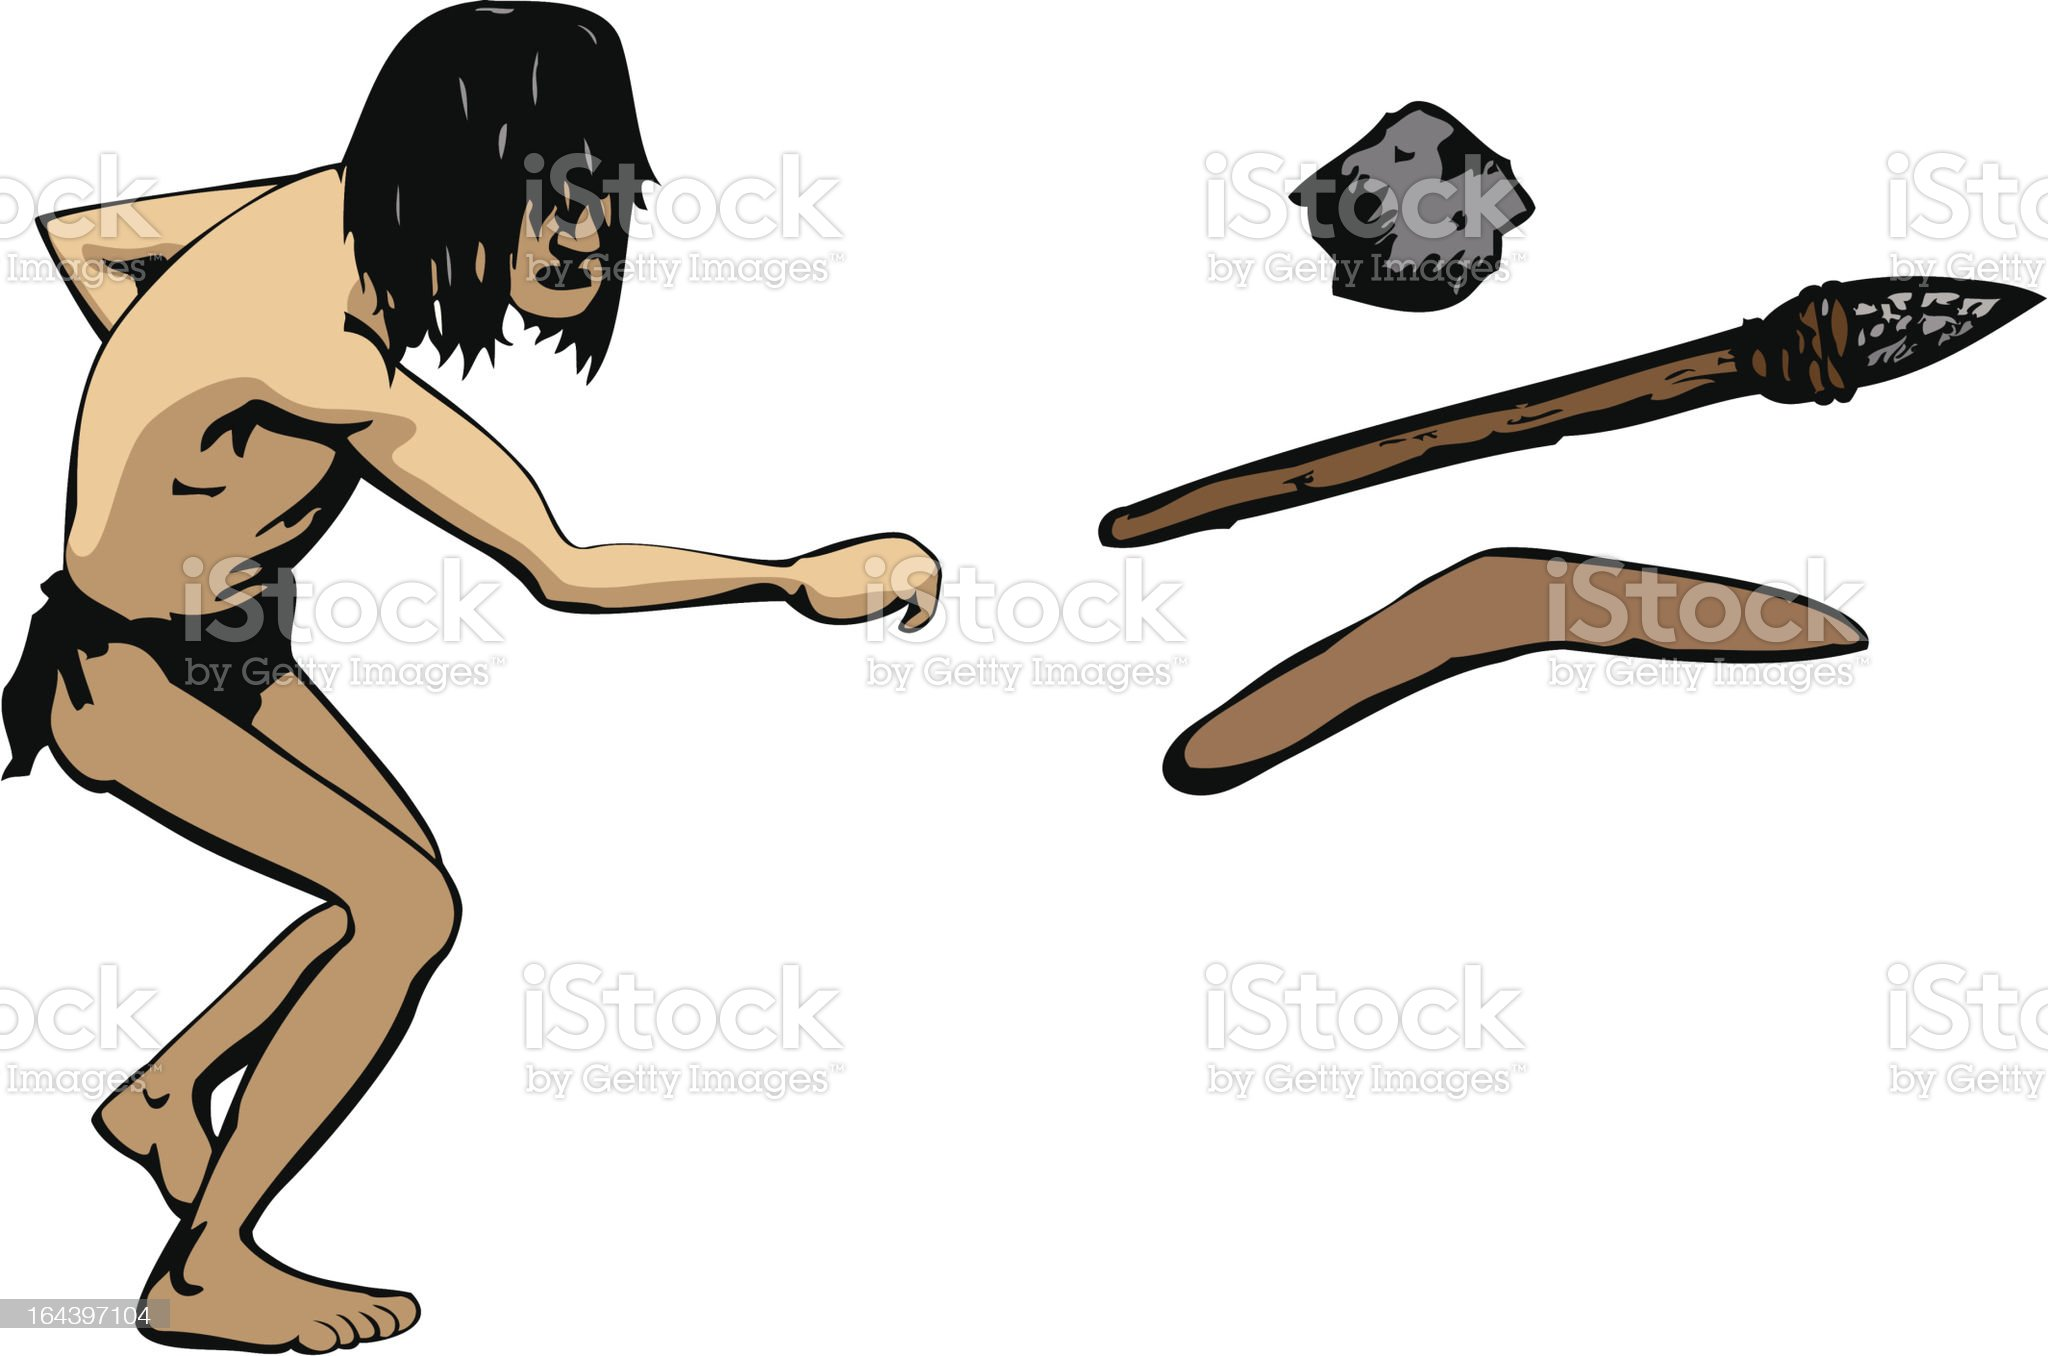 caveman throws a weapon royalty-free stock vector art